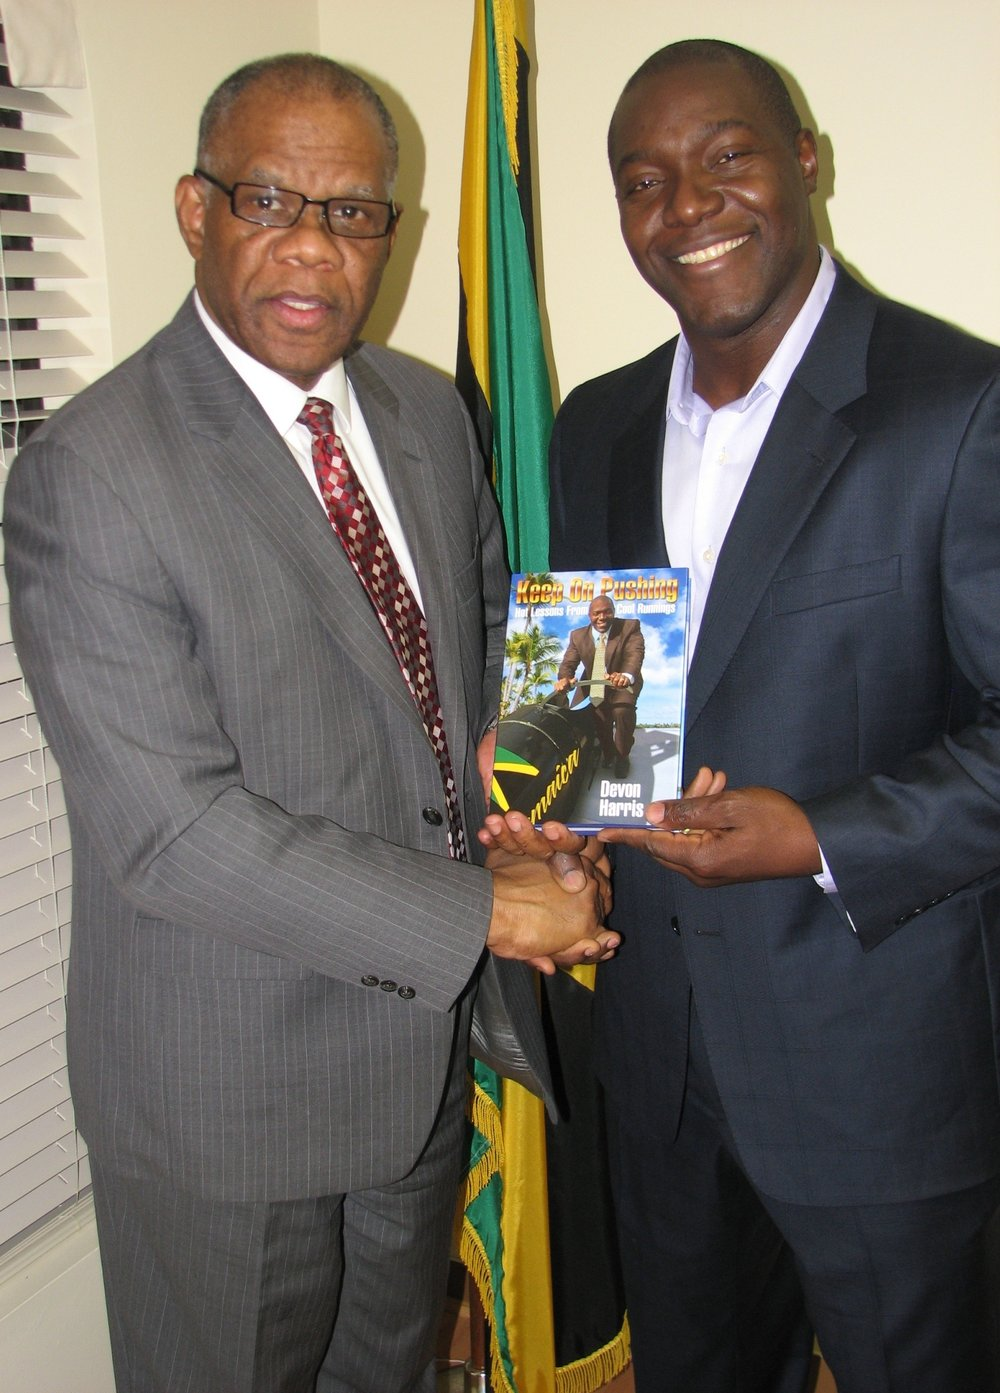 Devon Harris presents a copy of 'Keep on Pushing: Hot Lessons from Cool Runnings' to former Jamaica consul general to Toronto George Ramocan